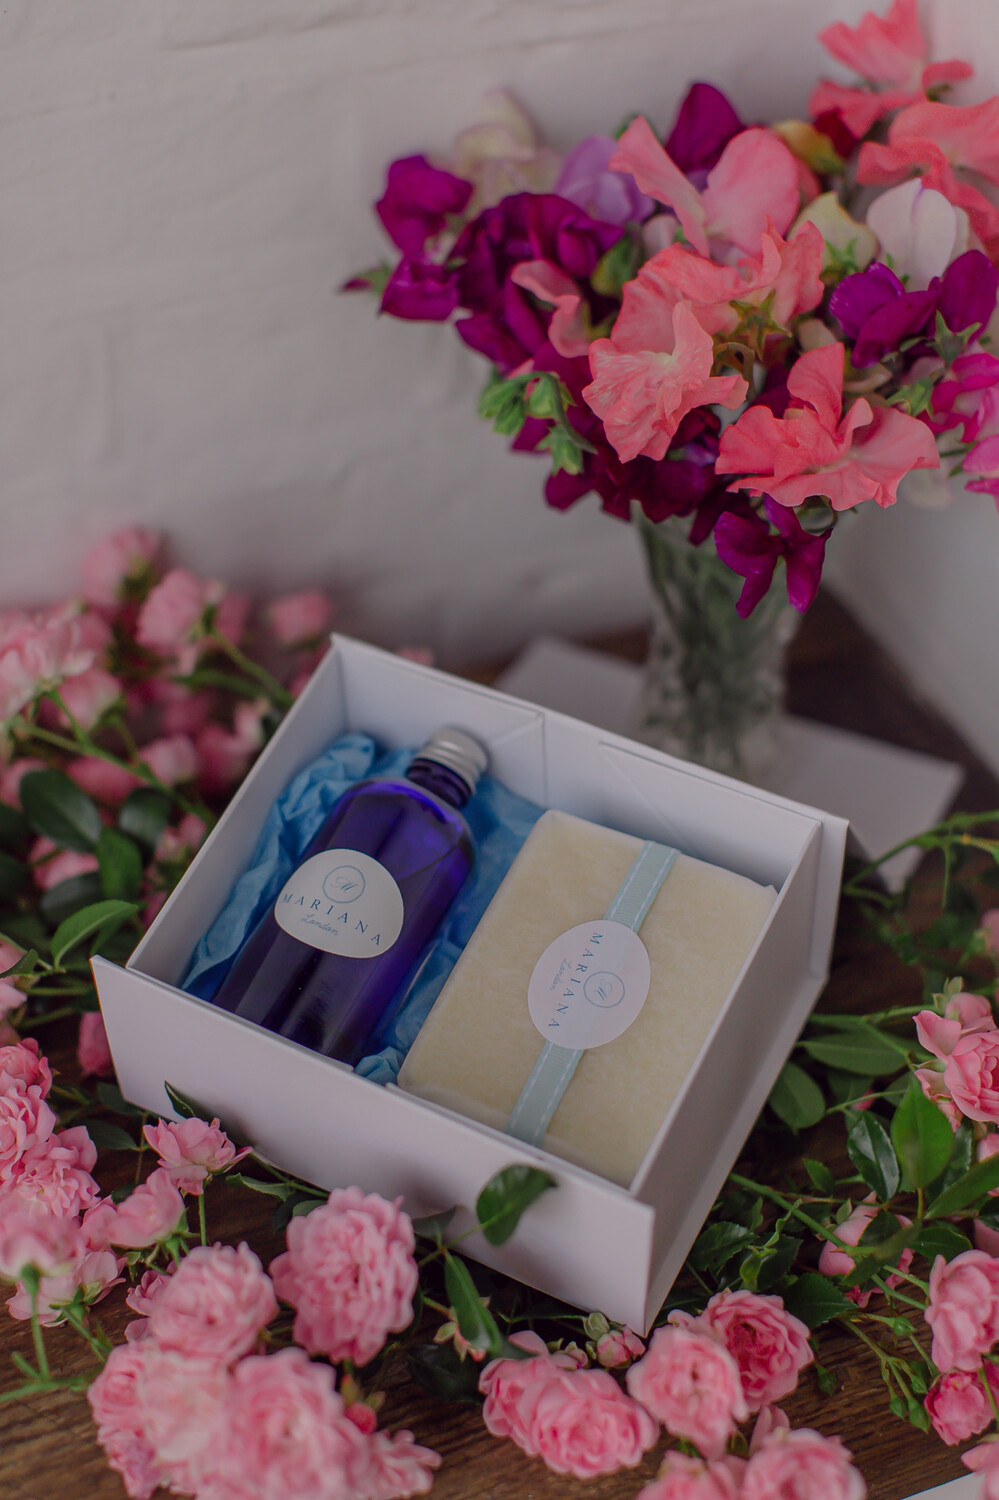 Lavender and May Chang Bath Oil and 110g Soap in a White Magnetic Gift Box